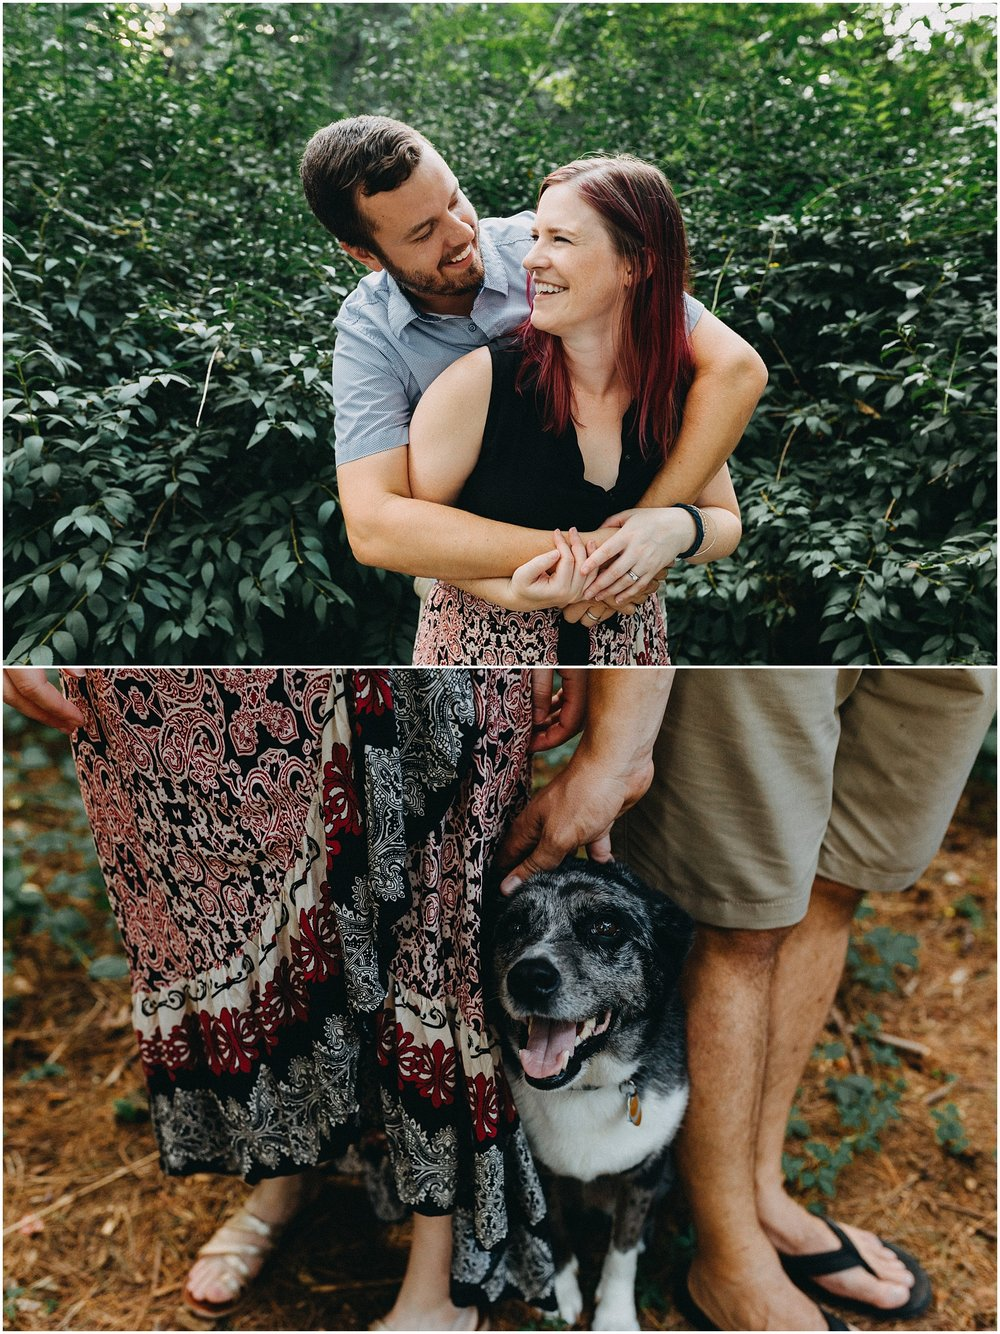 lifestyle-anniversary-engagement-photo session-rv-camping-road trip-vintage trailer-camping-outdoor photos_0256.jpg